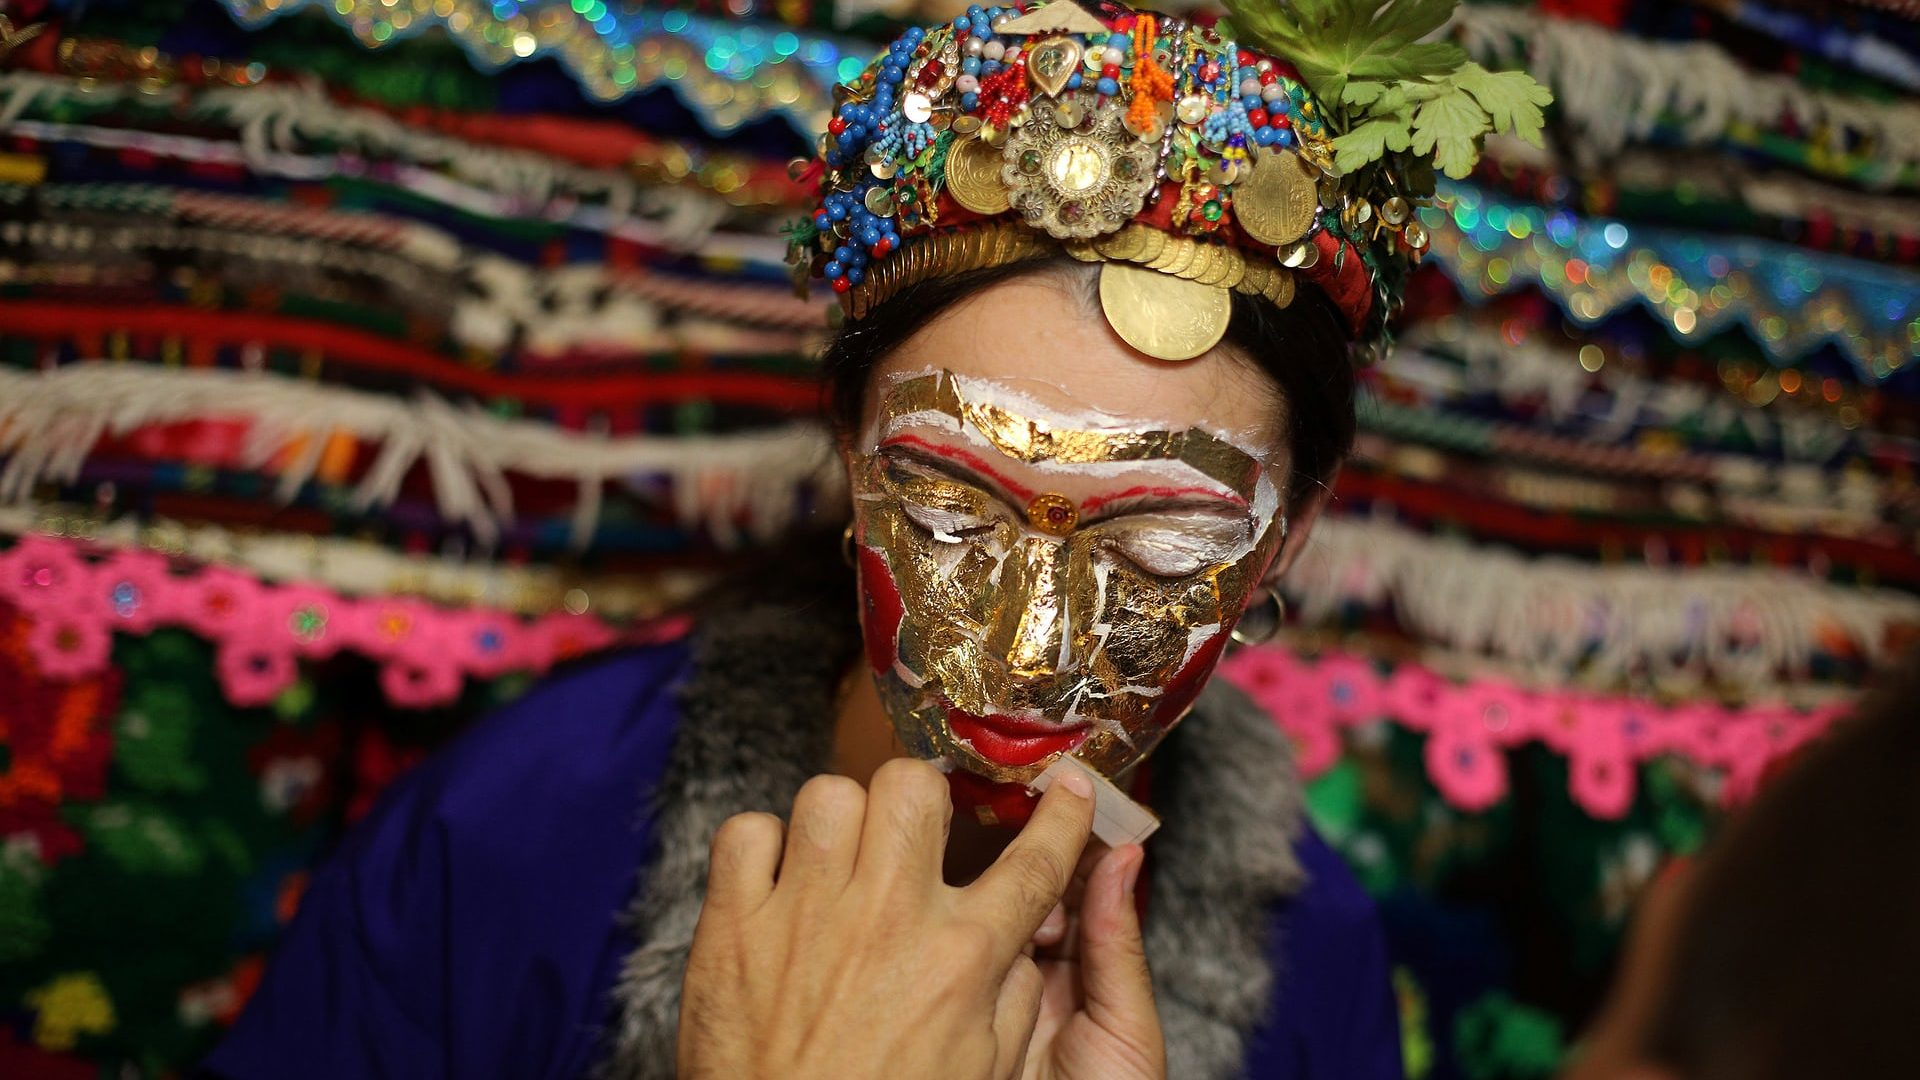 'Ghelina' makeup is applied to the face of Lilova, a Bulgarian Muslim, during her wedding ceremony Photograph: Stoyan Nenov/Reuters